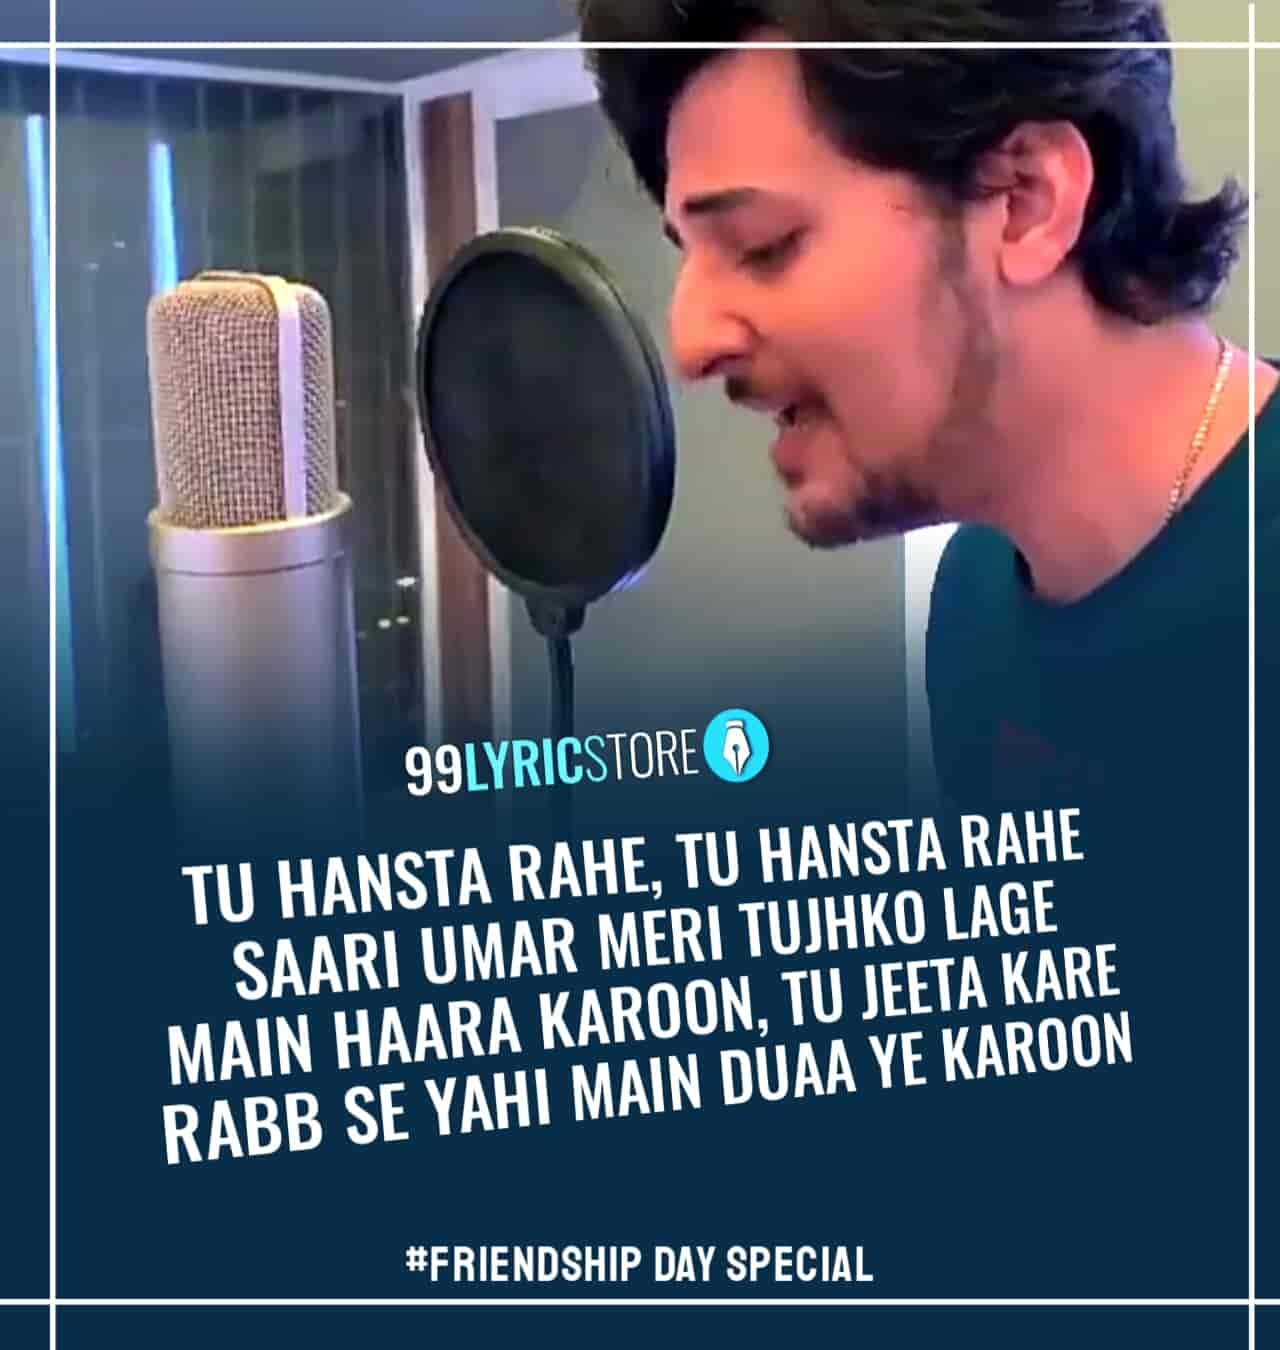 Tujhe Happy Friendship Day O Mere Yaar Lyrics Darshan Raval Friendship has been portrayed in lucid styles in hindi films. tujhe happy friendship day o mere yaar